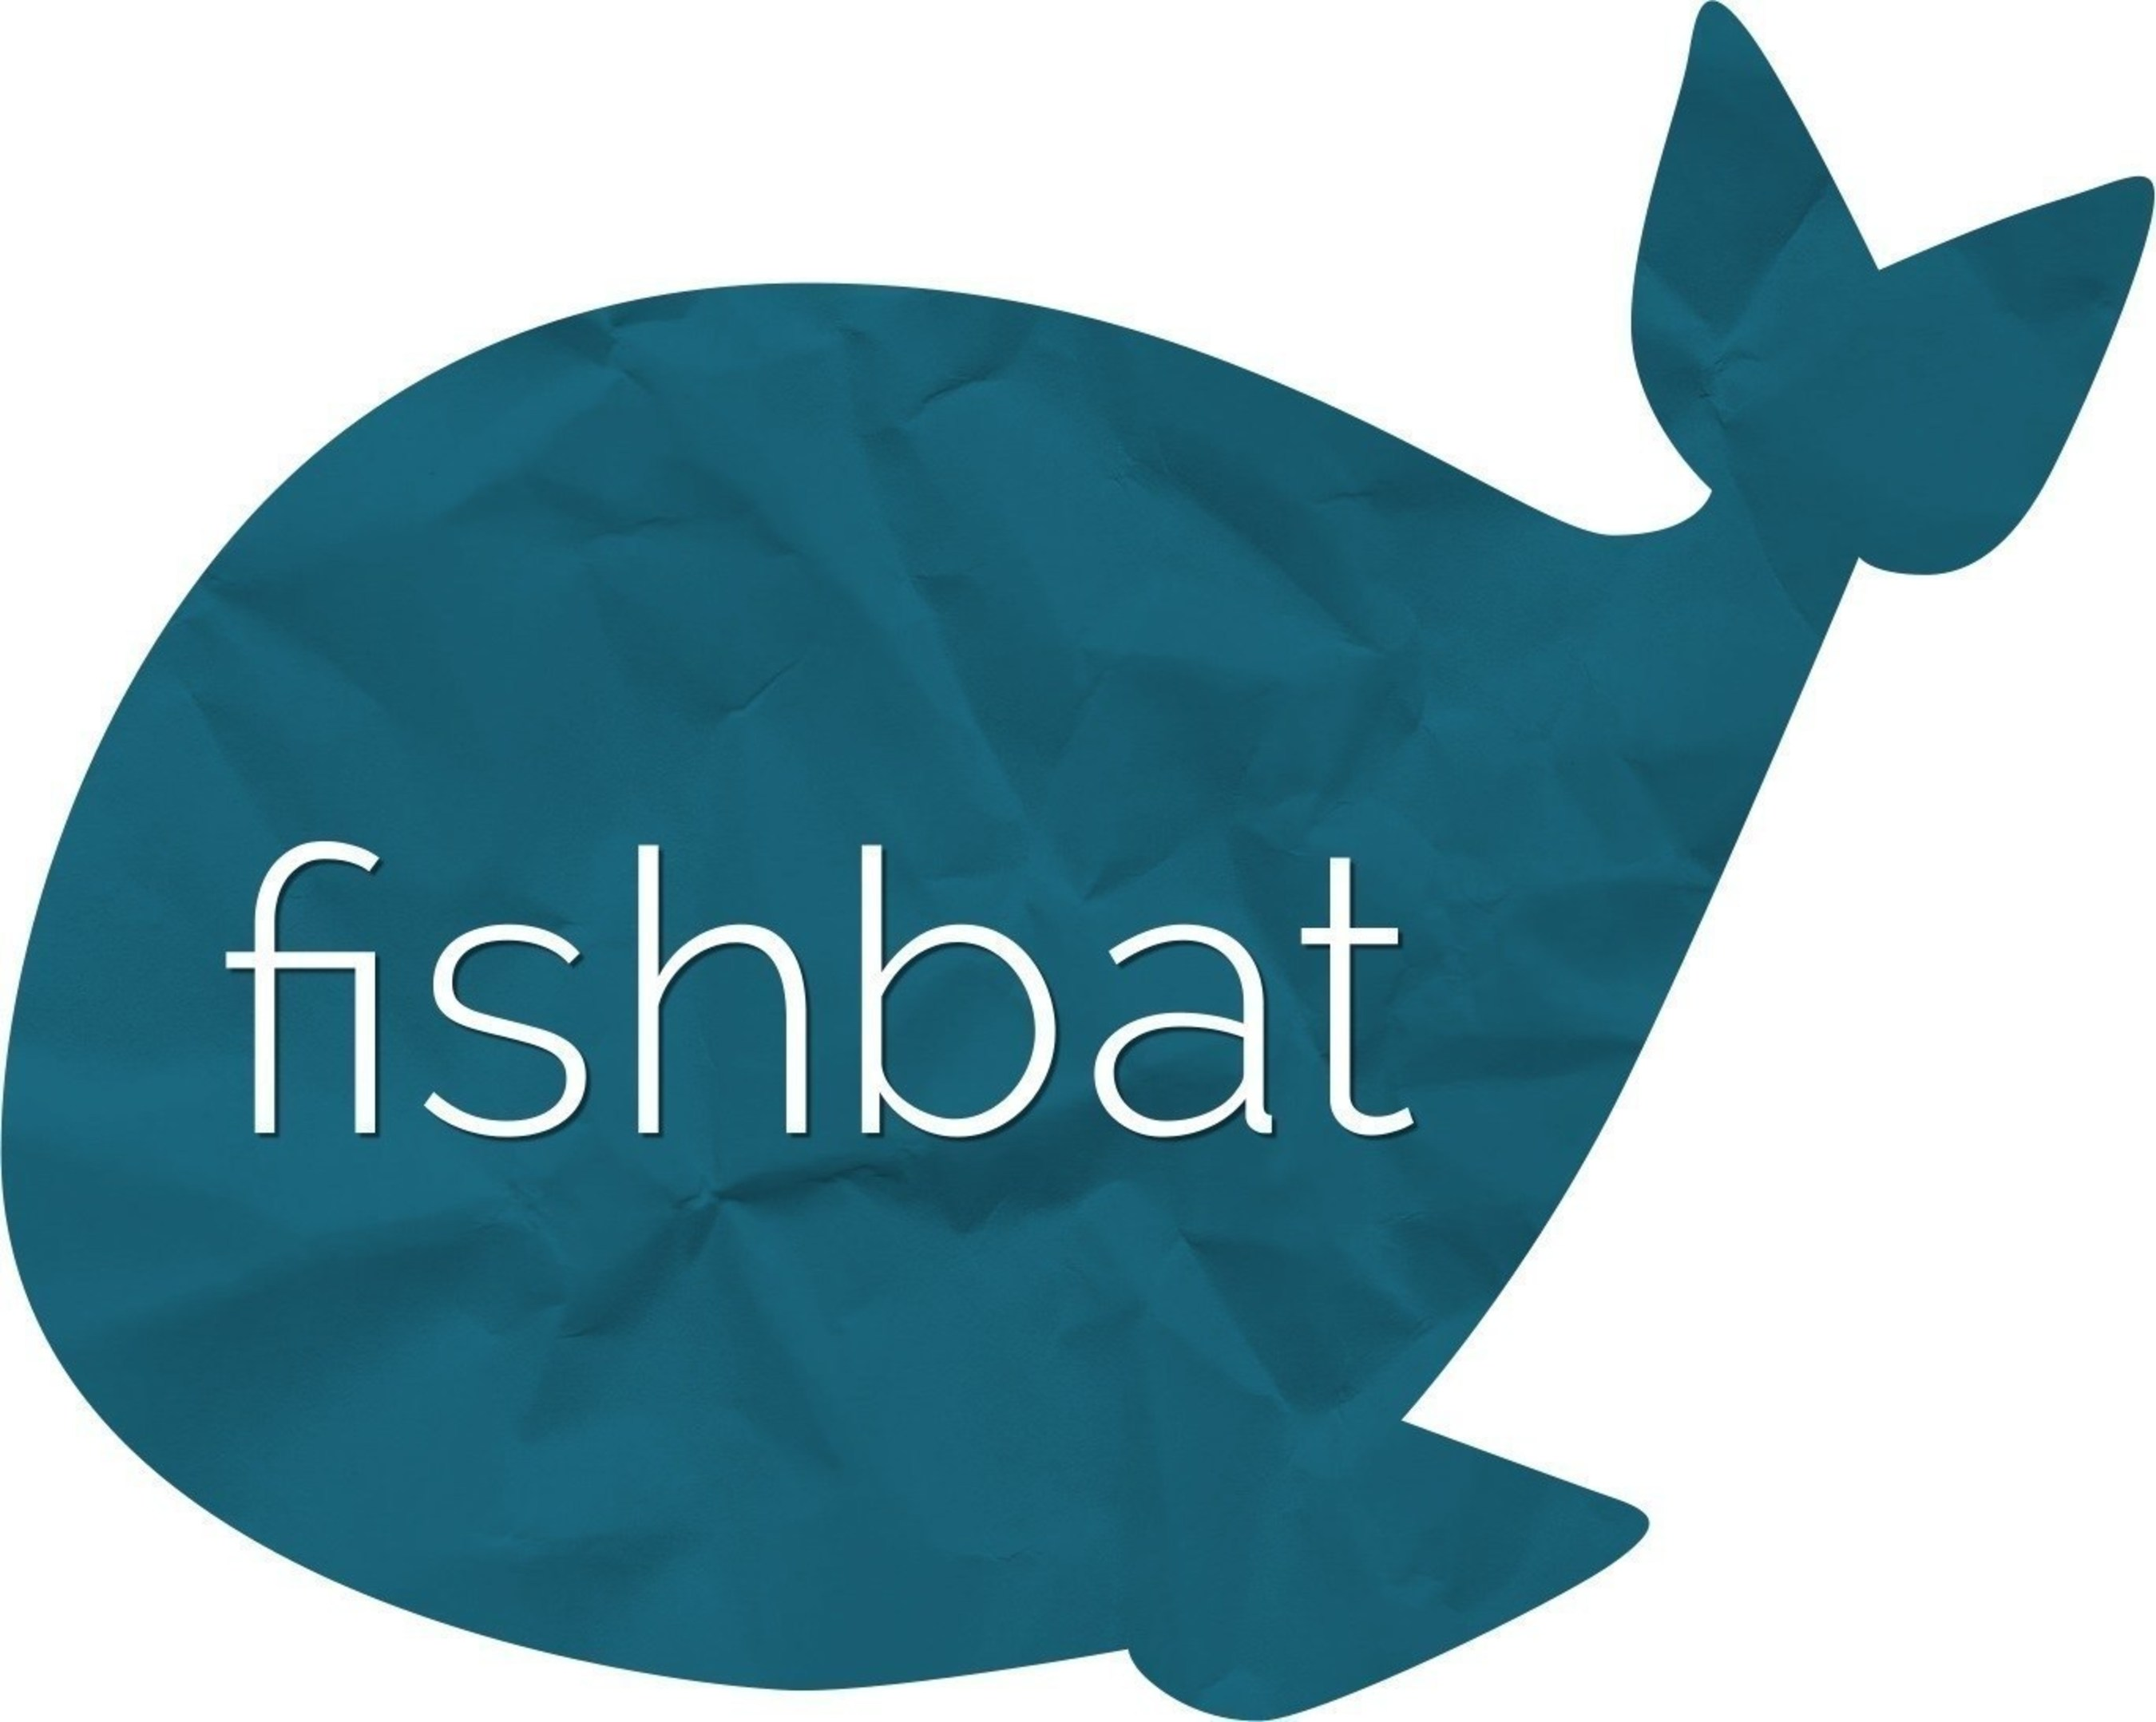 fishbat Shares 4 Ways Boat Transport Companies can Utilize Blogs to Promote Their Business